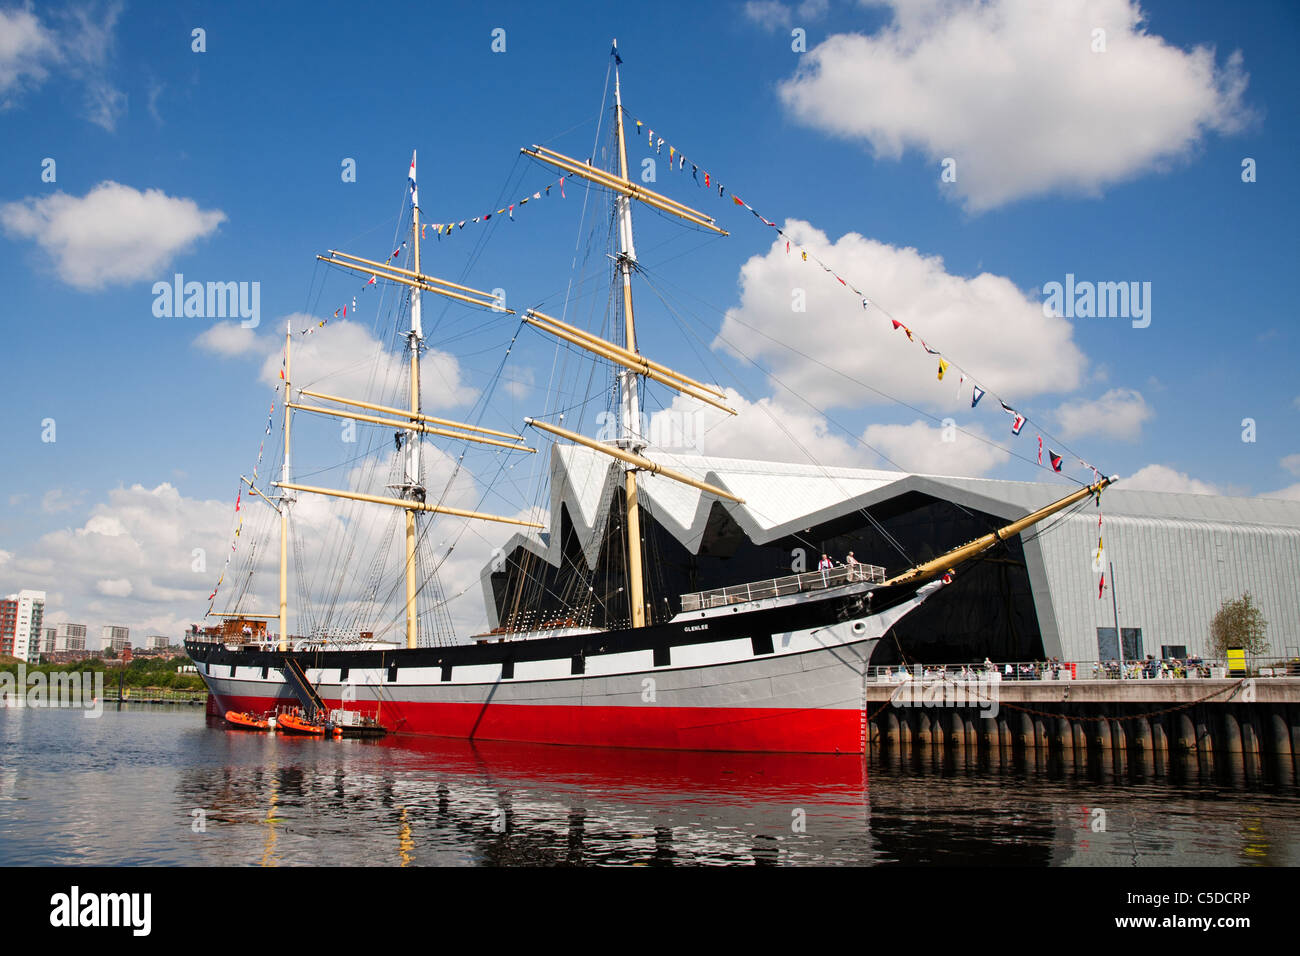 The Glenlee tall ship moored at Glasgow's Riverside Museum, Pointhouse quay, Scotland. - Stock Image